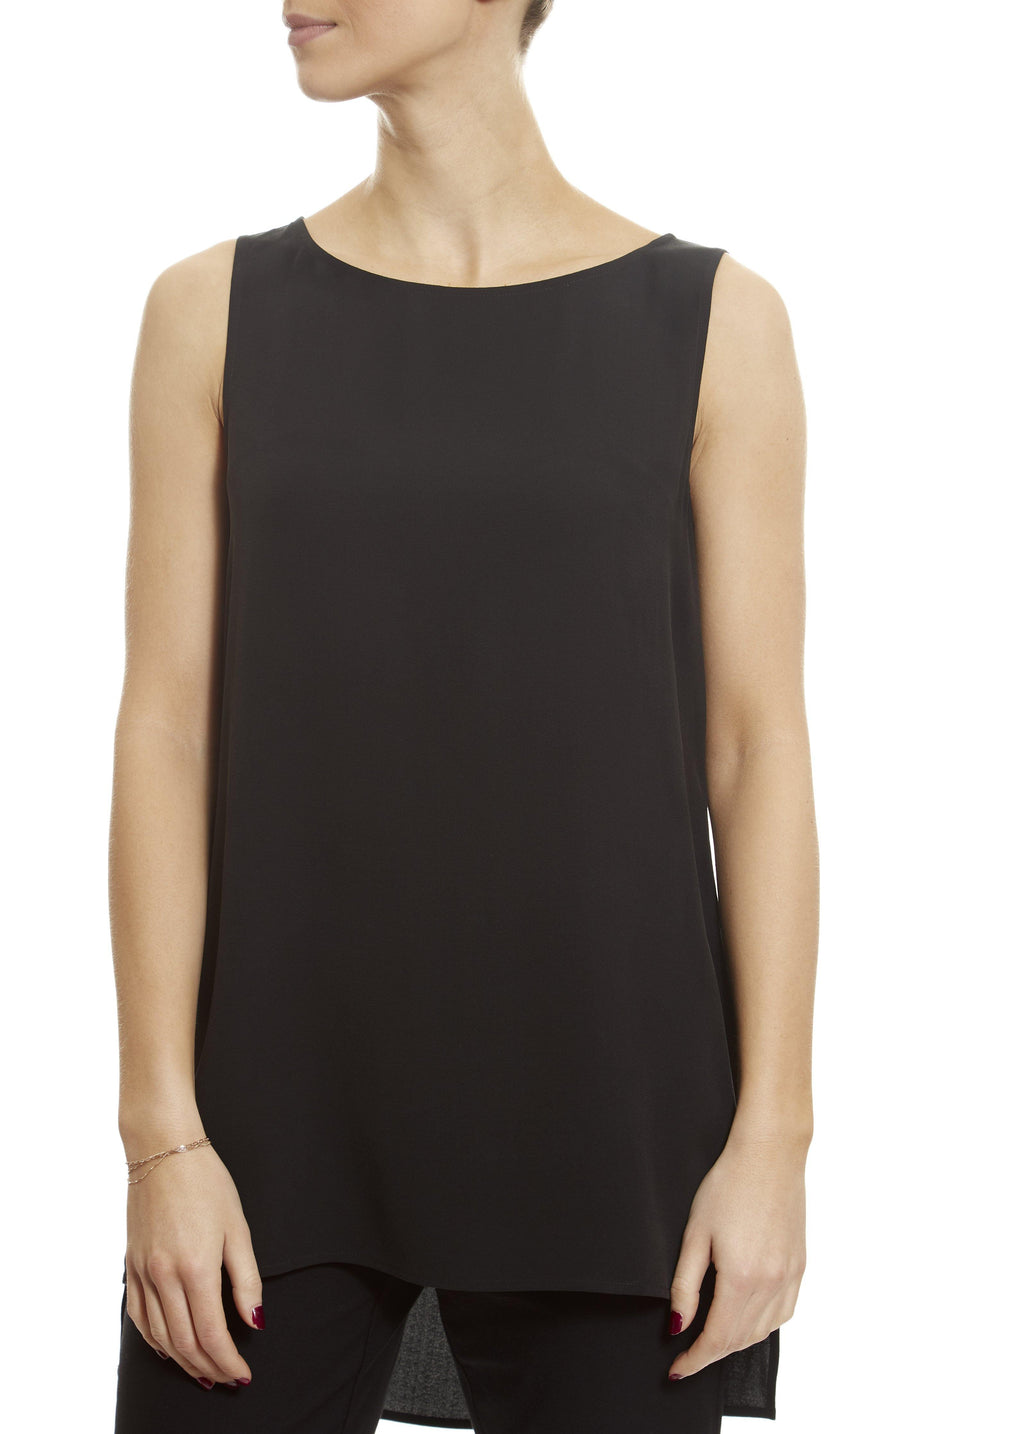 Bateau Round Neck 'Black' Long Eileen Fisher Shell Top Eileen Fisher - Jessimara